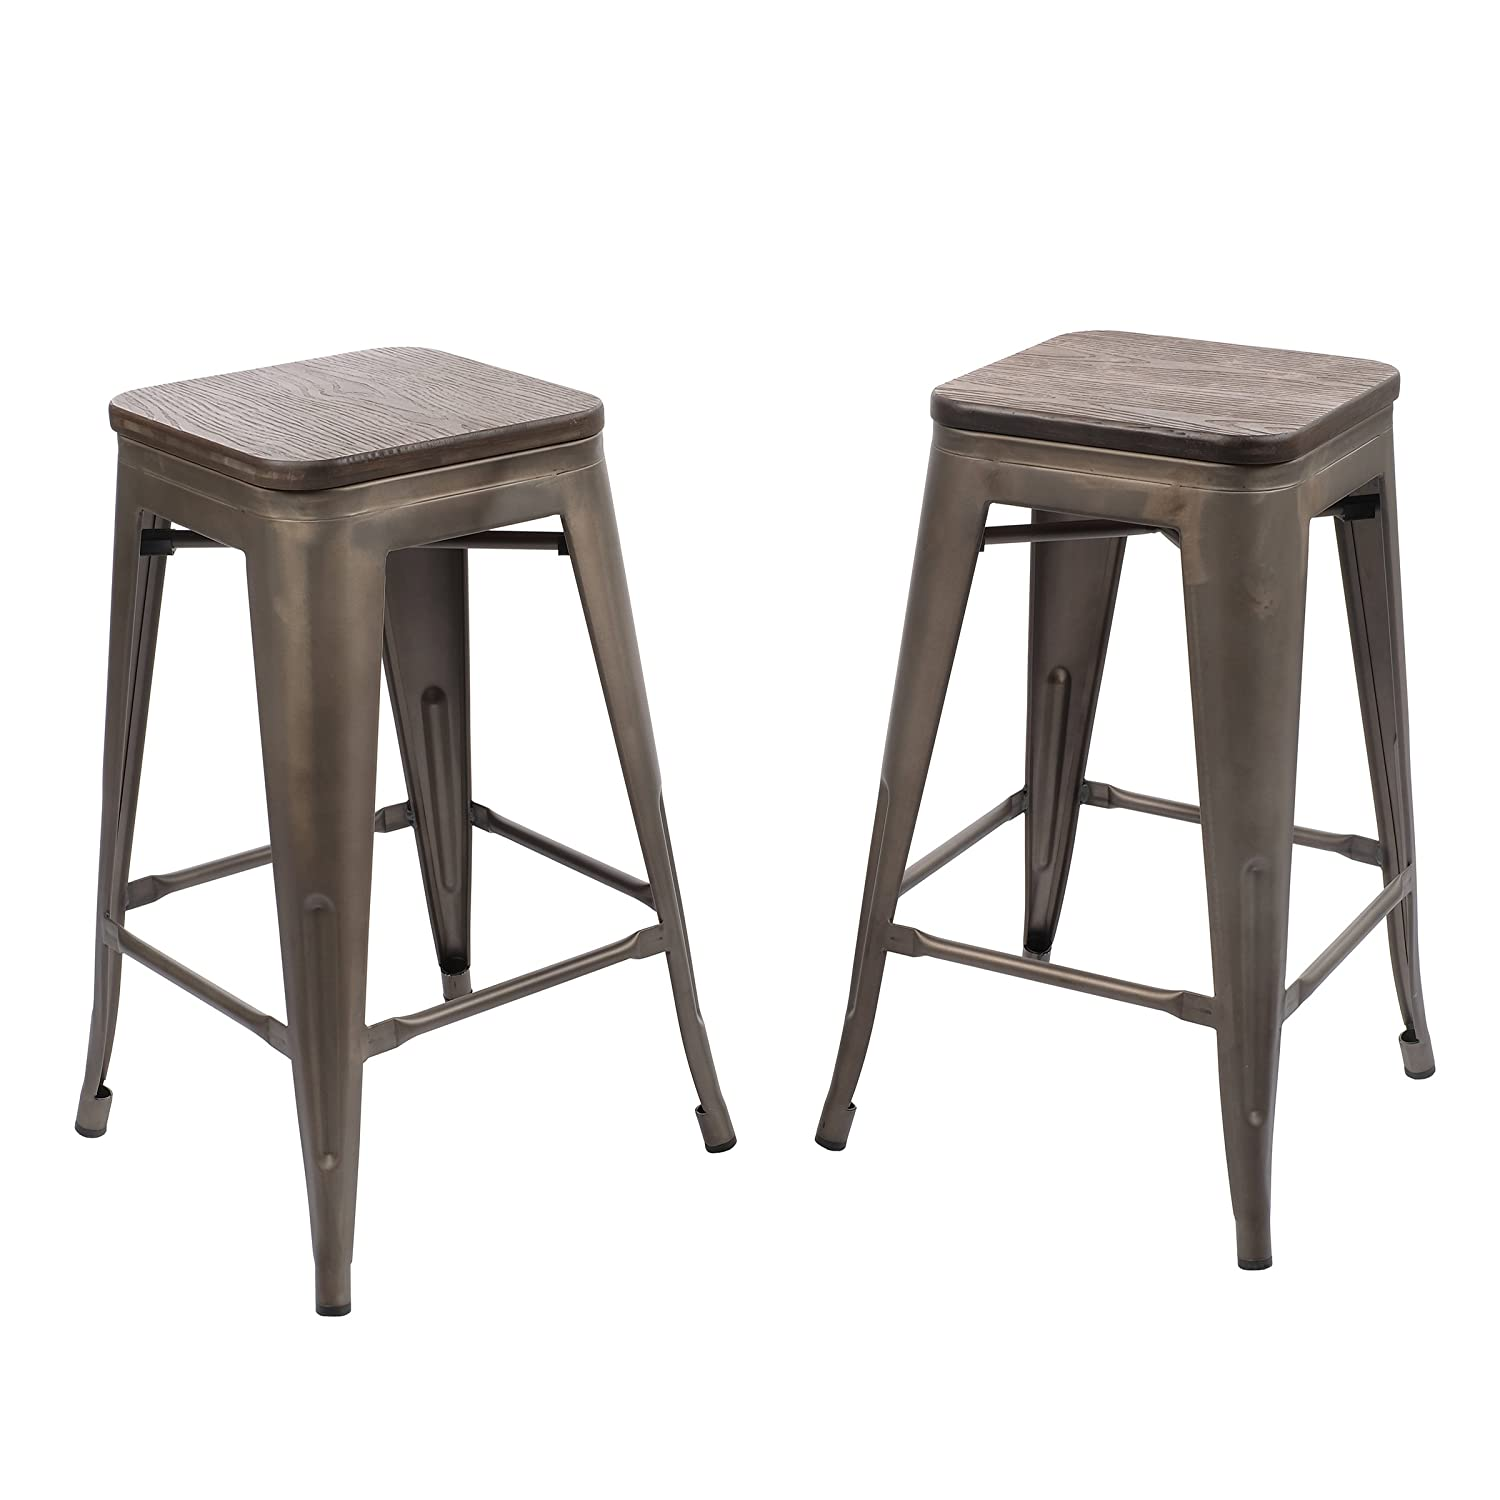 Primo International 28336 Corban 30 Metal Bar Stools, Set of 2, Gunmetal/Oak, Gunmetal/Oak